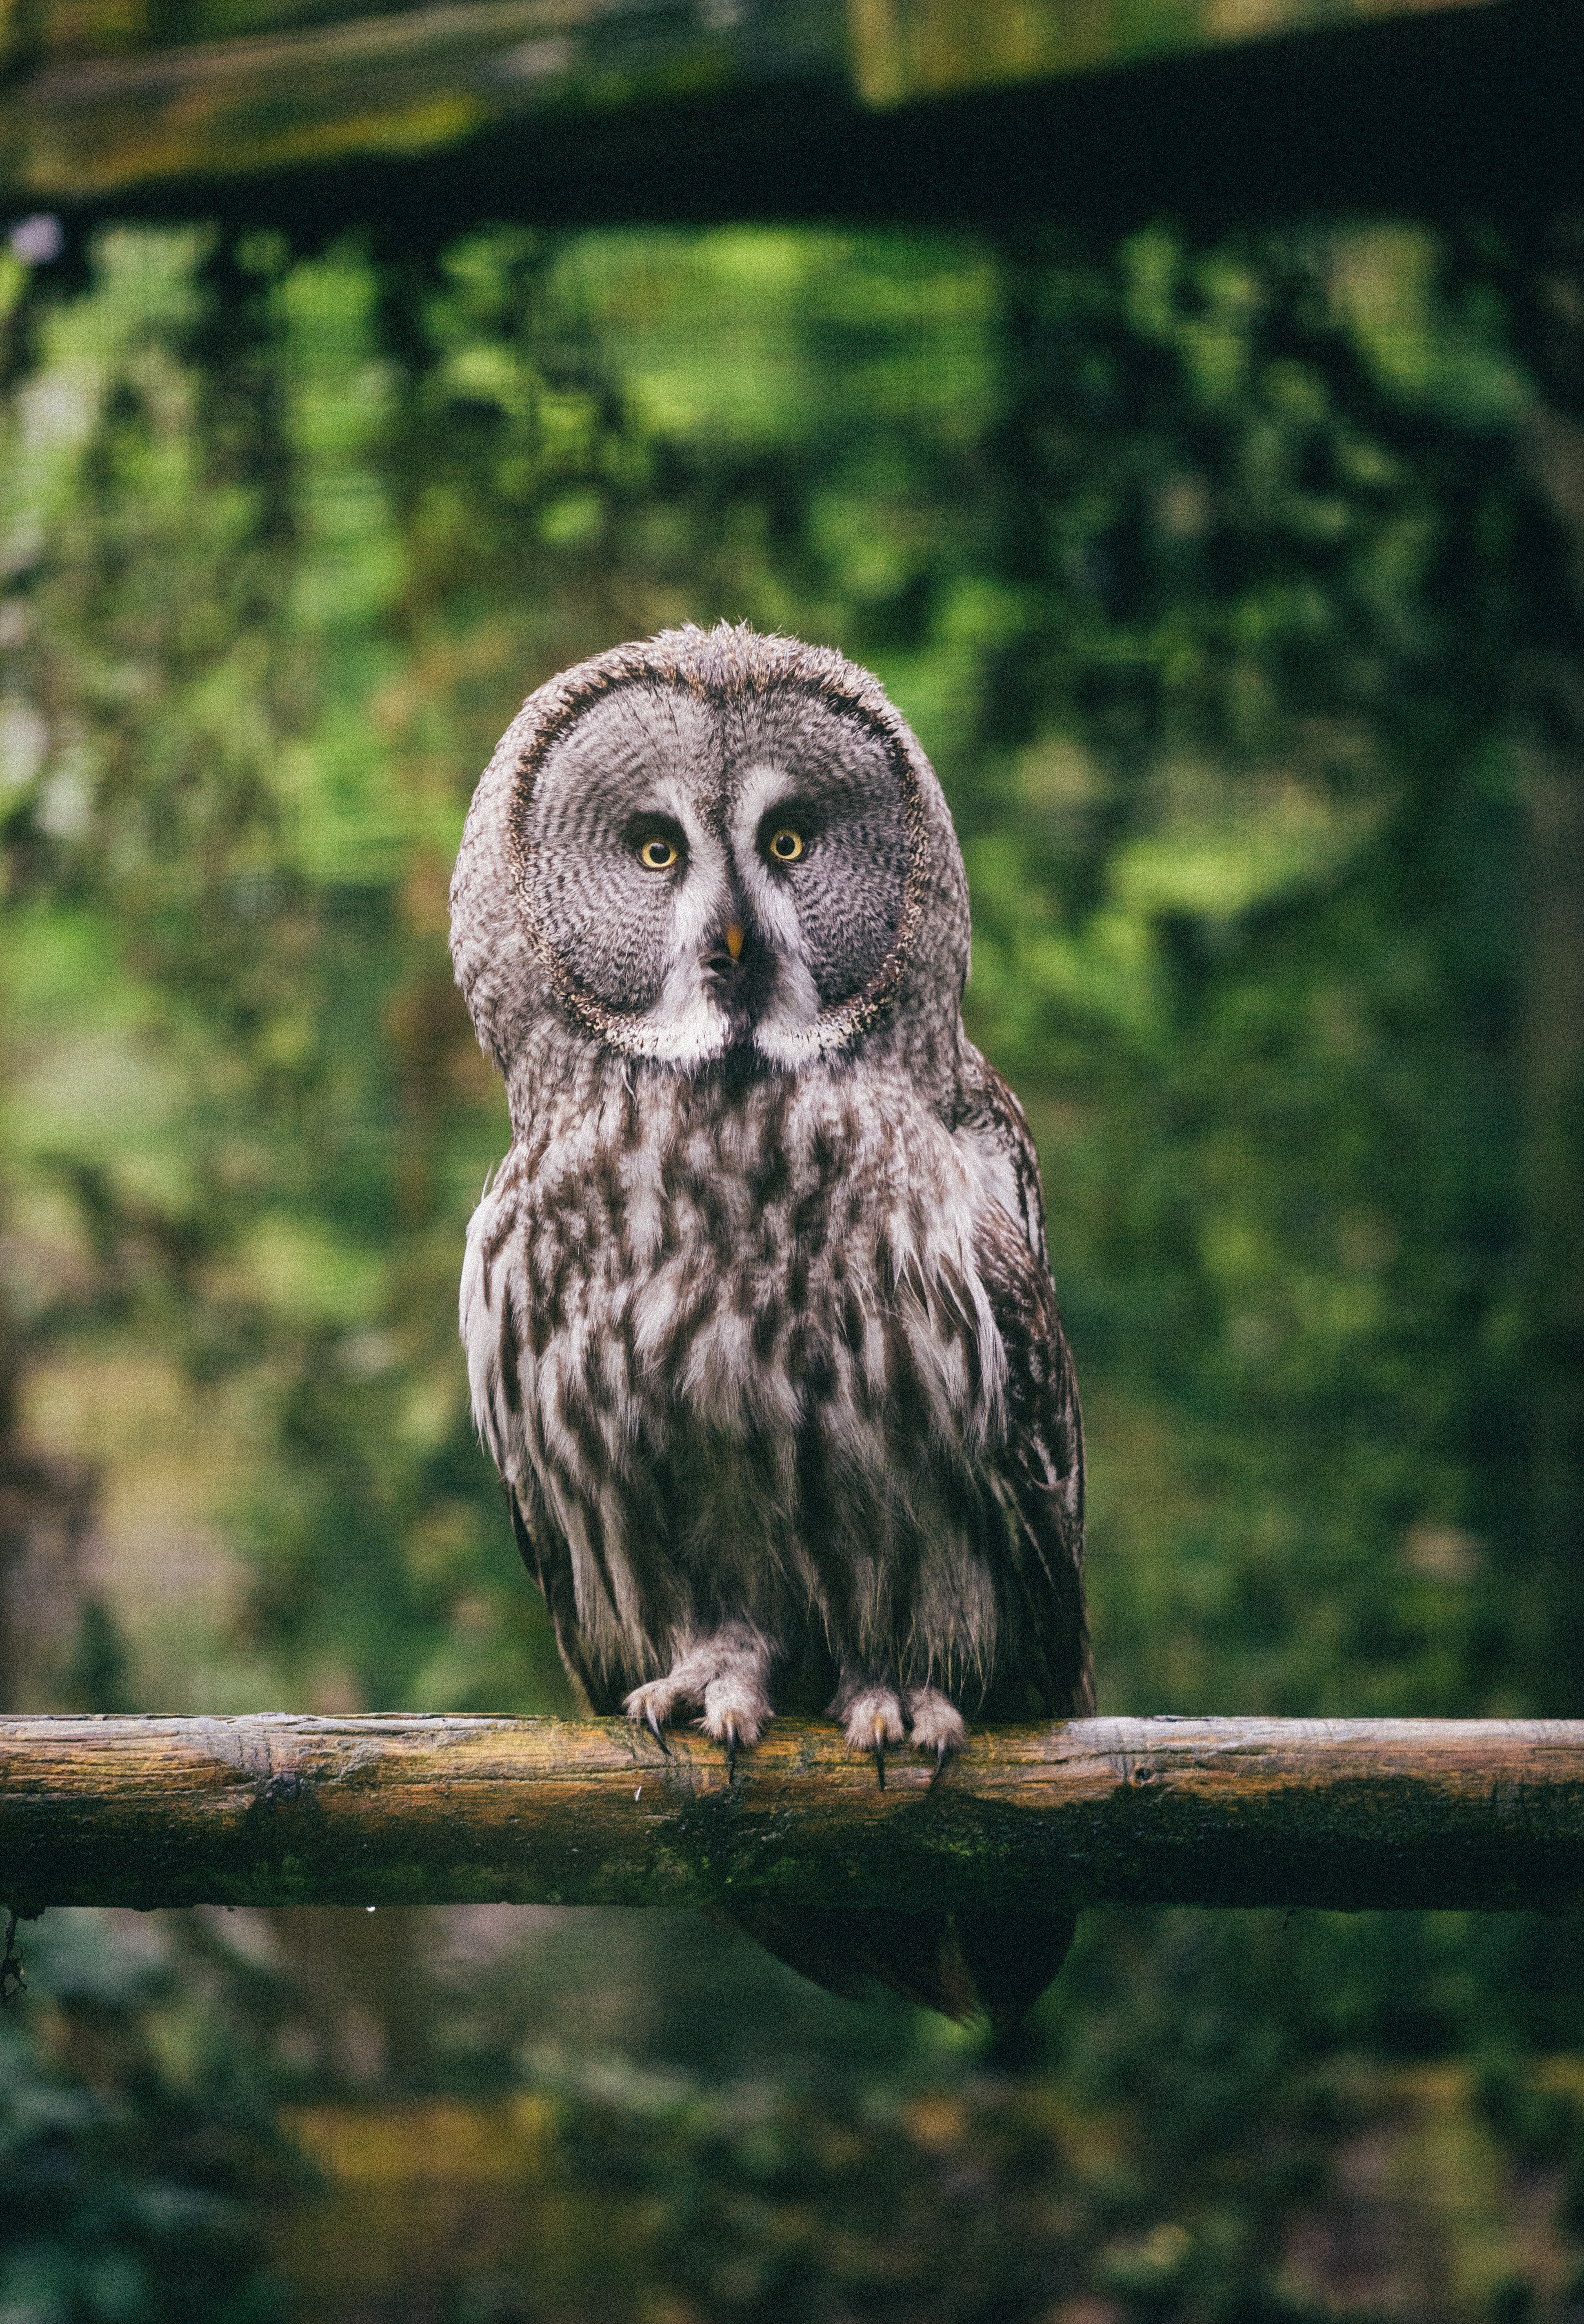 147404 download wallpaper Animals, Owl, Eagle Owl, Bird, Predator, Sight, Opinion screensavers and pictures for free